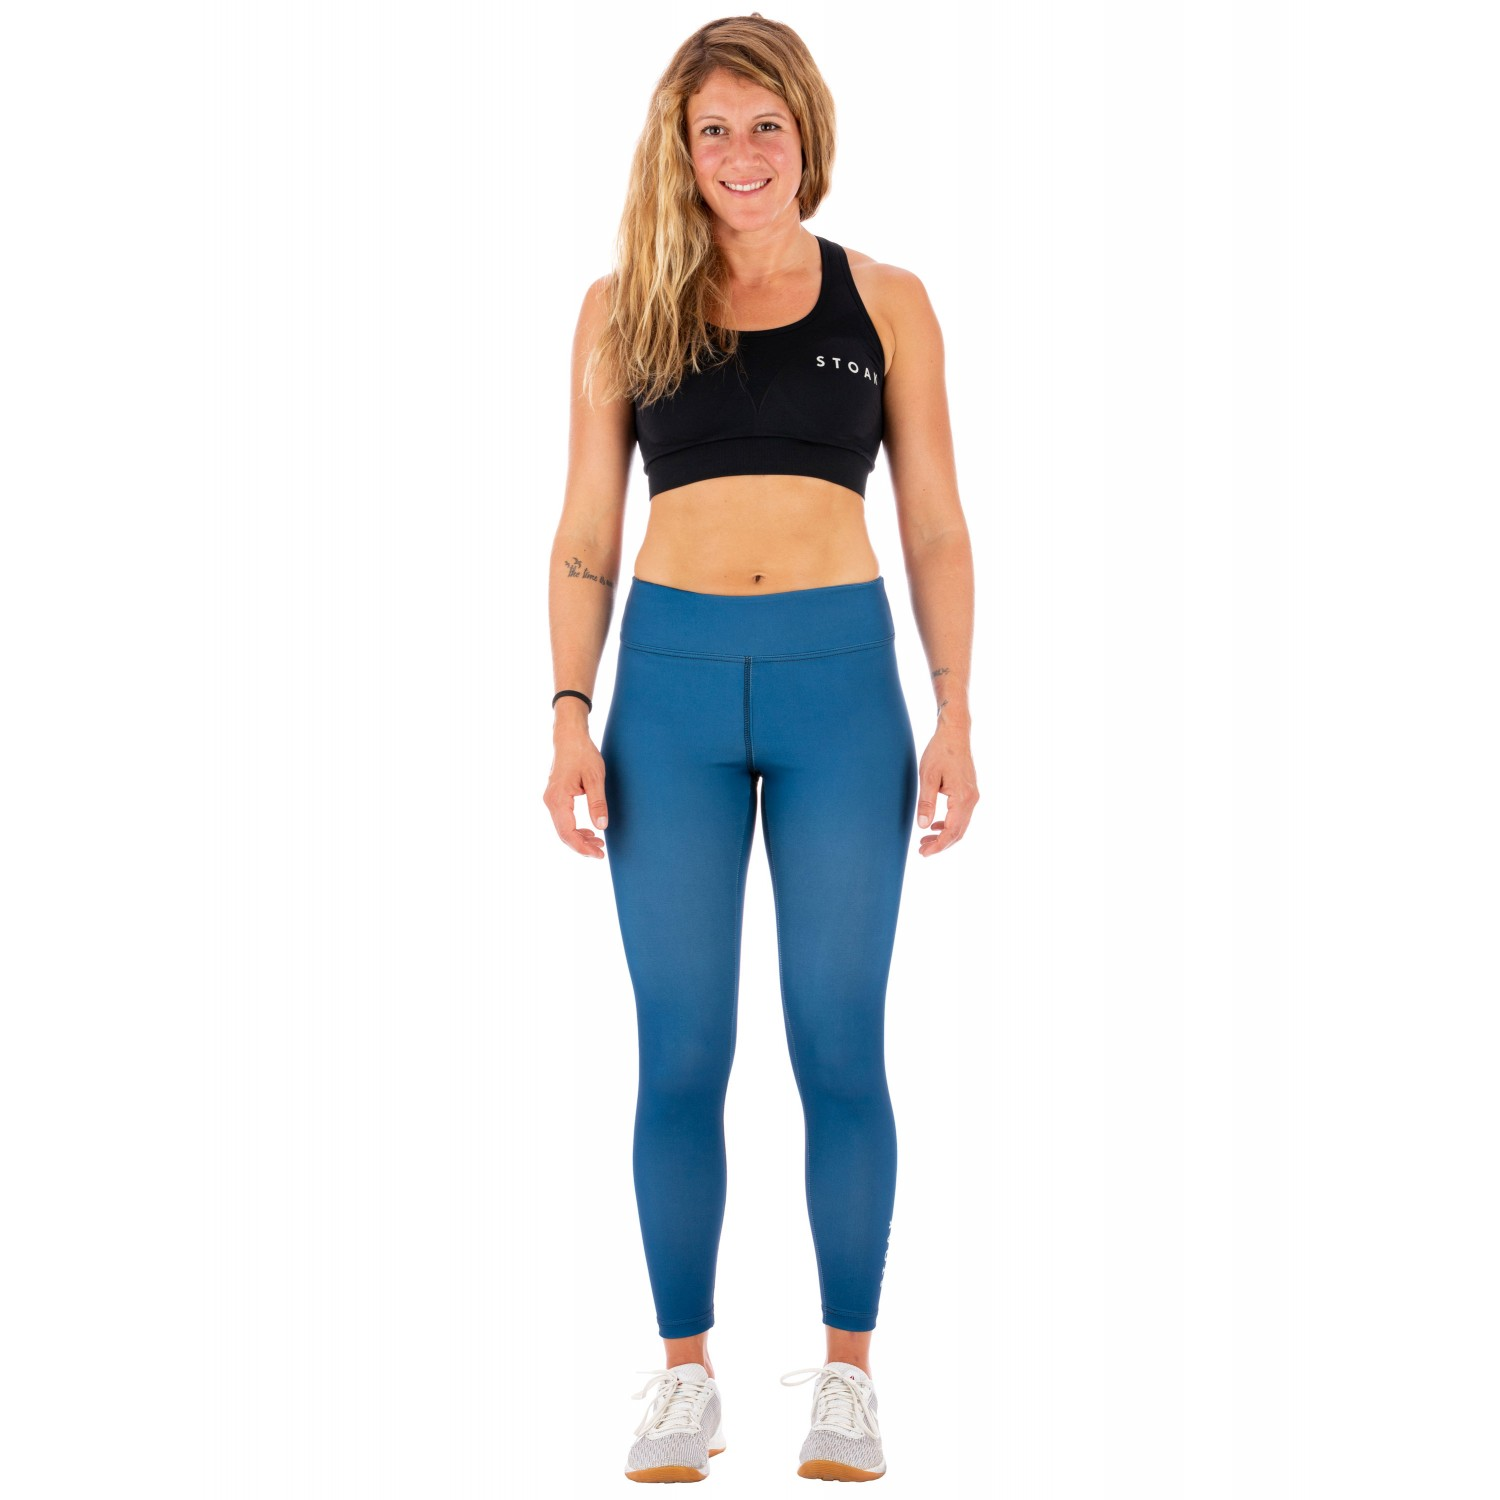 STOAK CARBON - STEEL Package Sport BH + Leggings